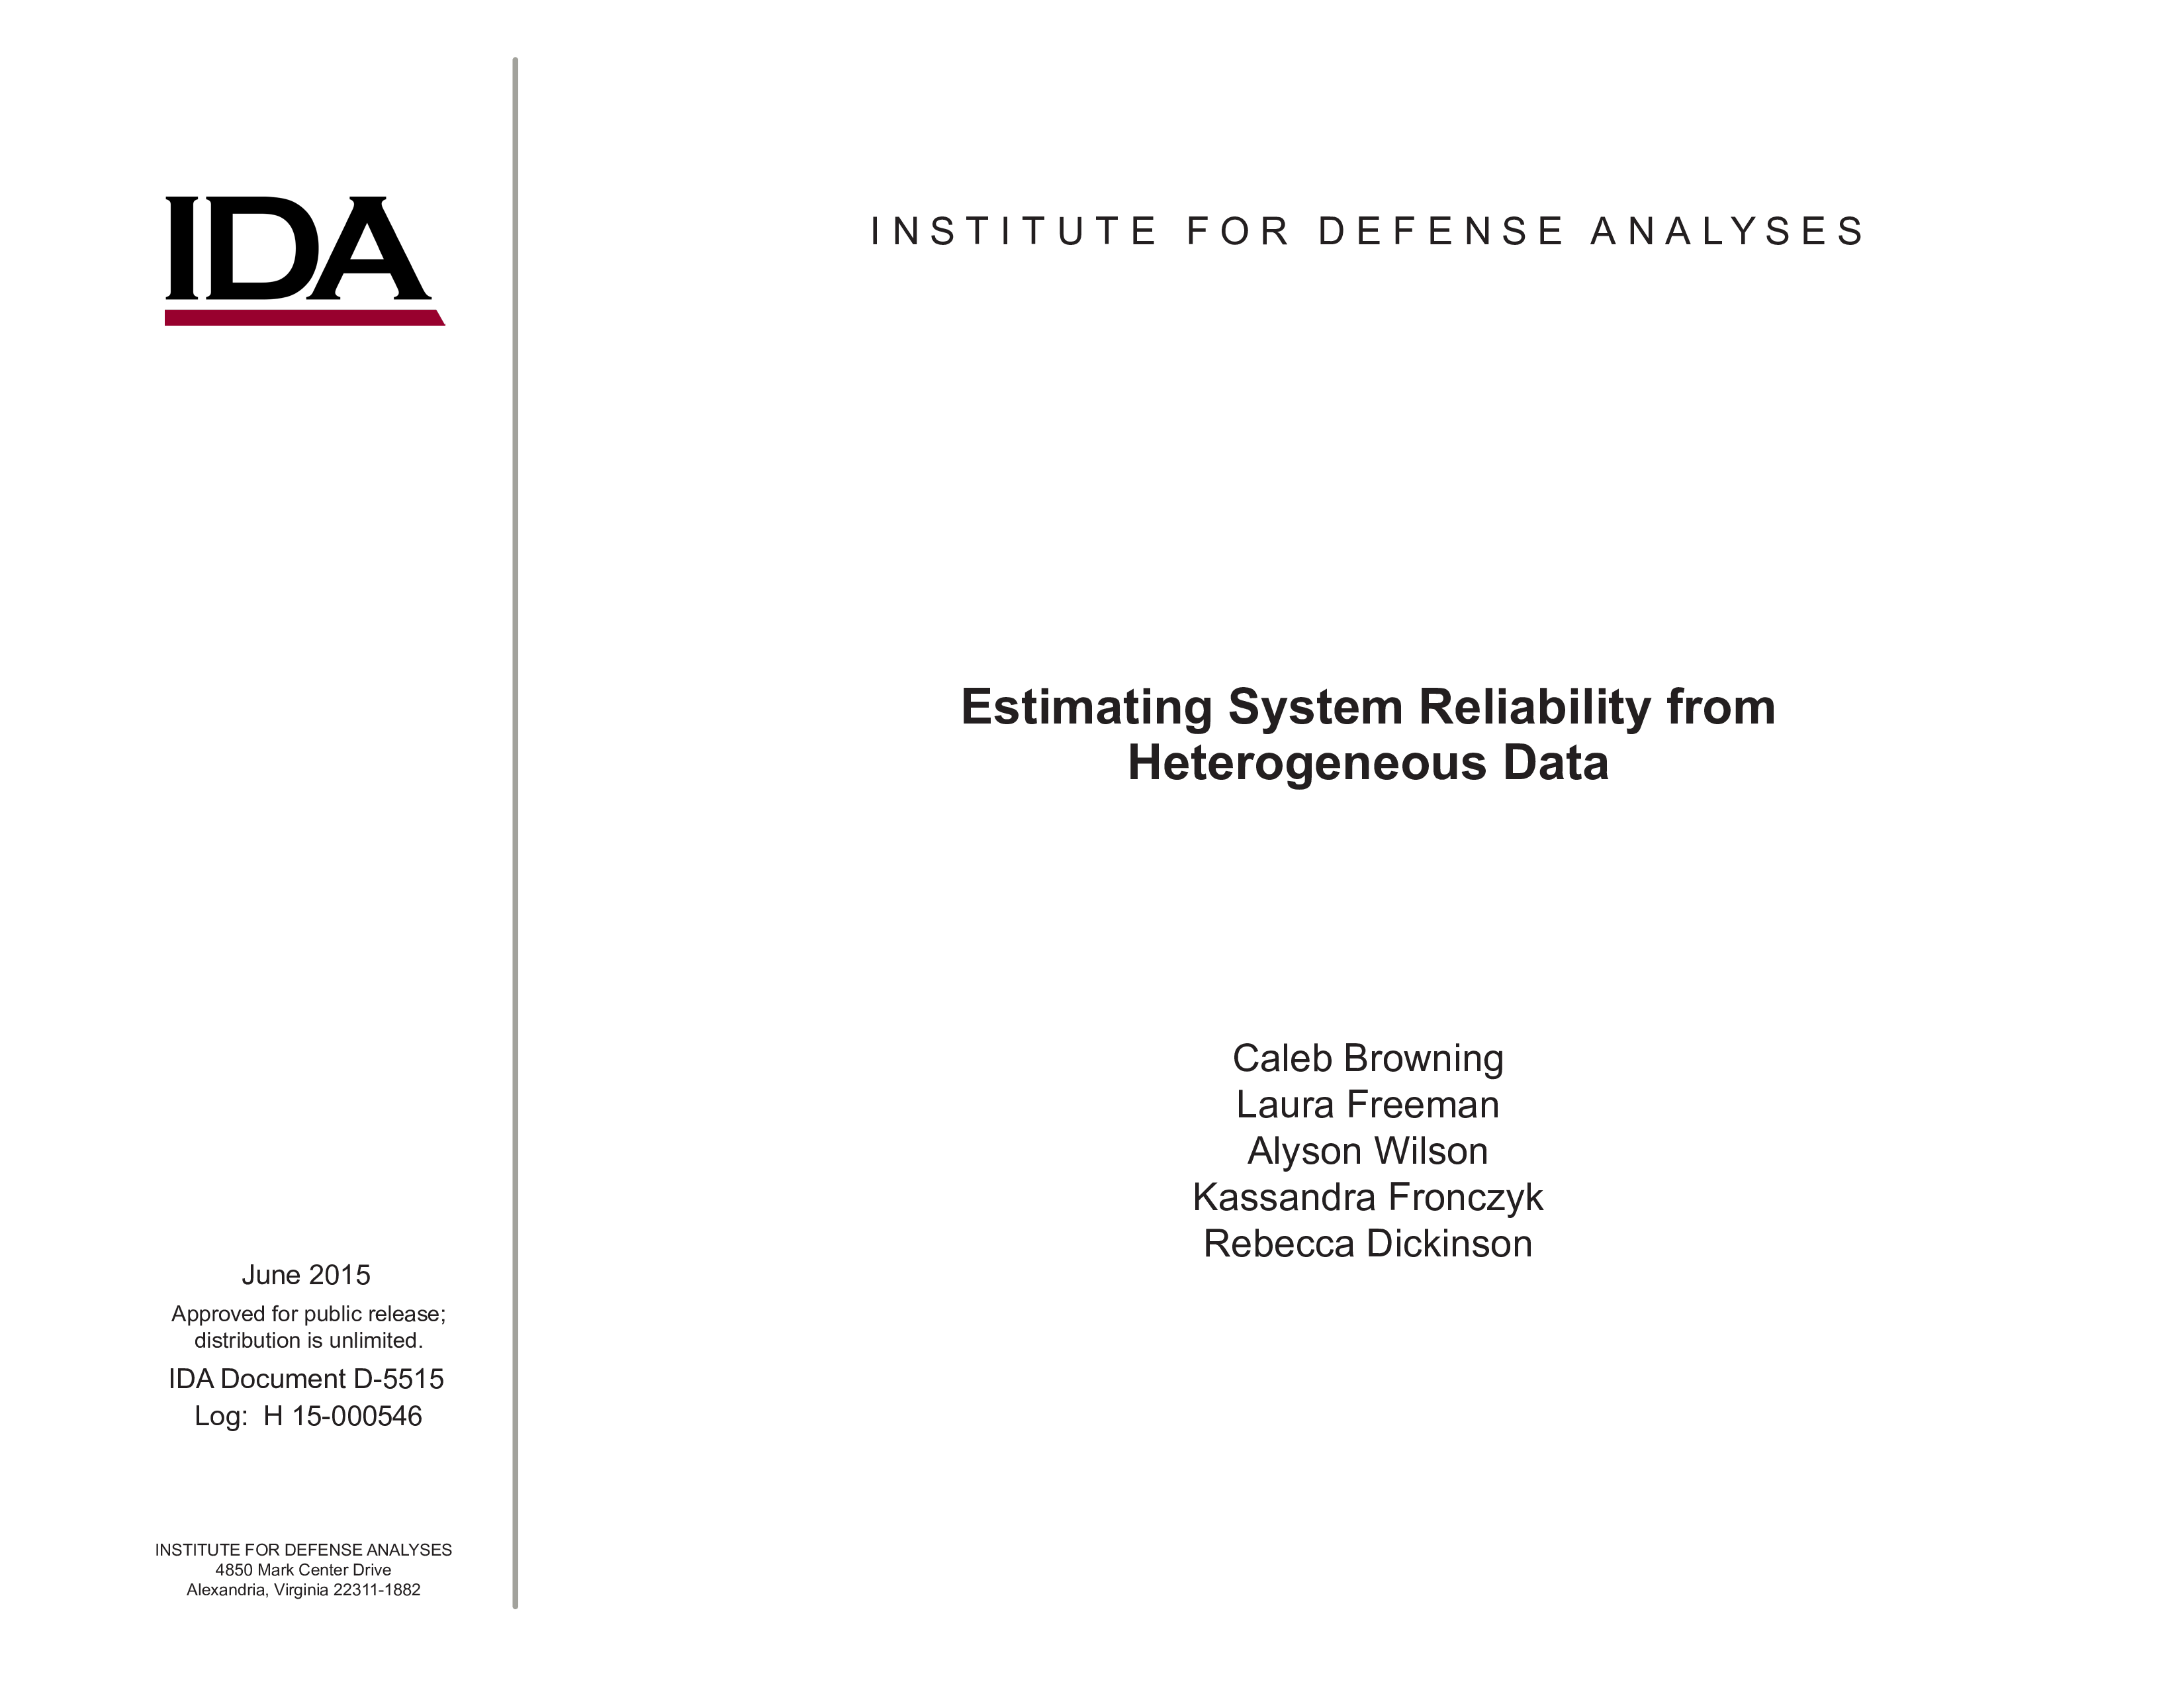 Estimating System Reliability from Heterogeneous Data